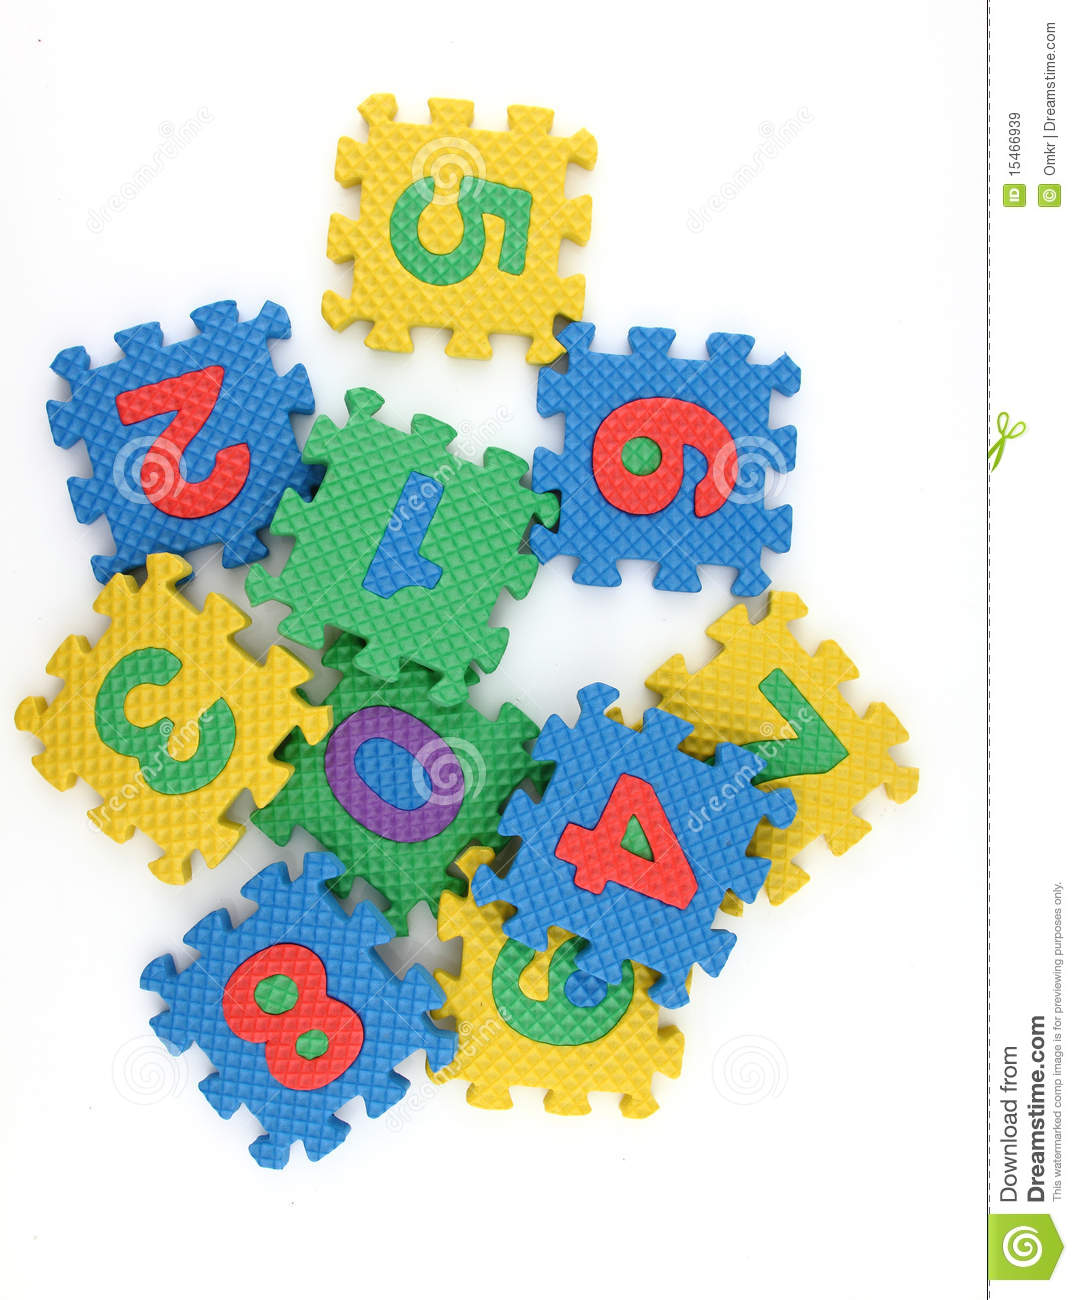 Numbers puzzle scattered on white background